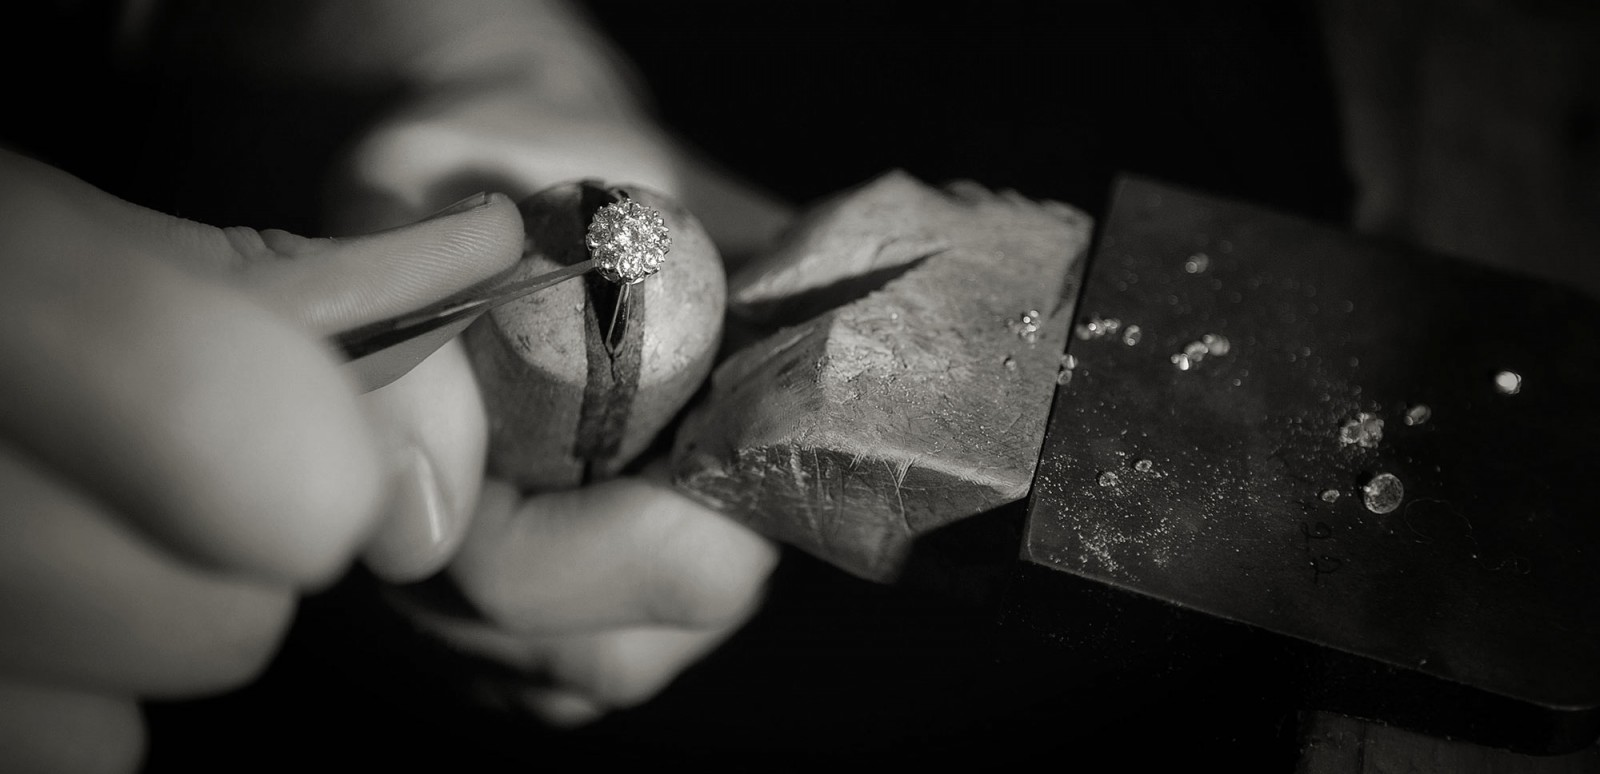 Hand made jewellery designer Julian Bartrom, working on custom made jewellery and custom engagement rings